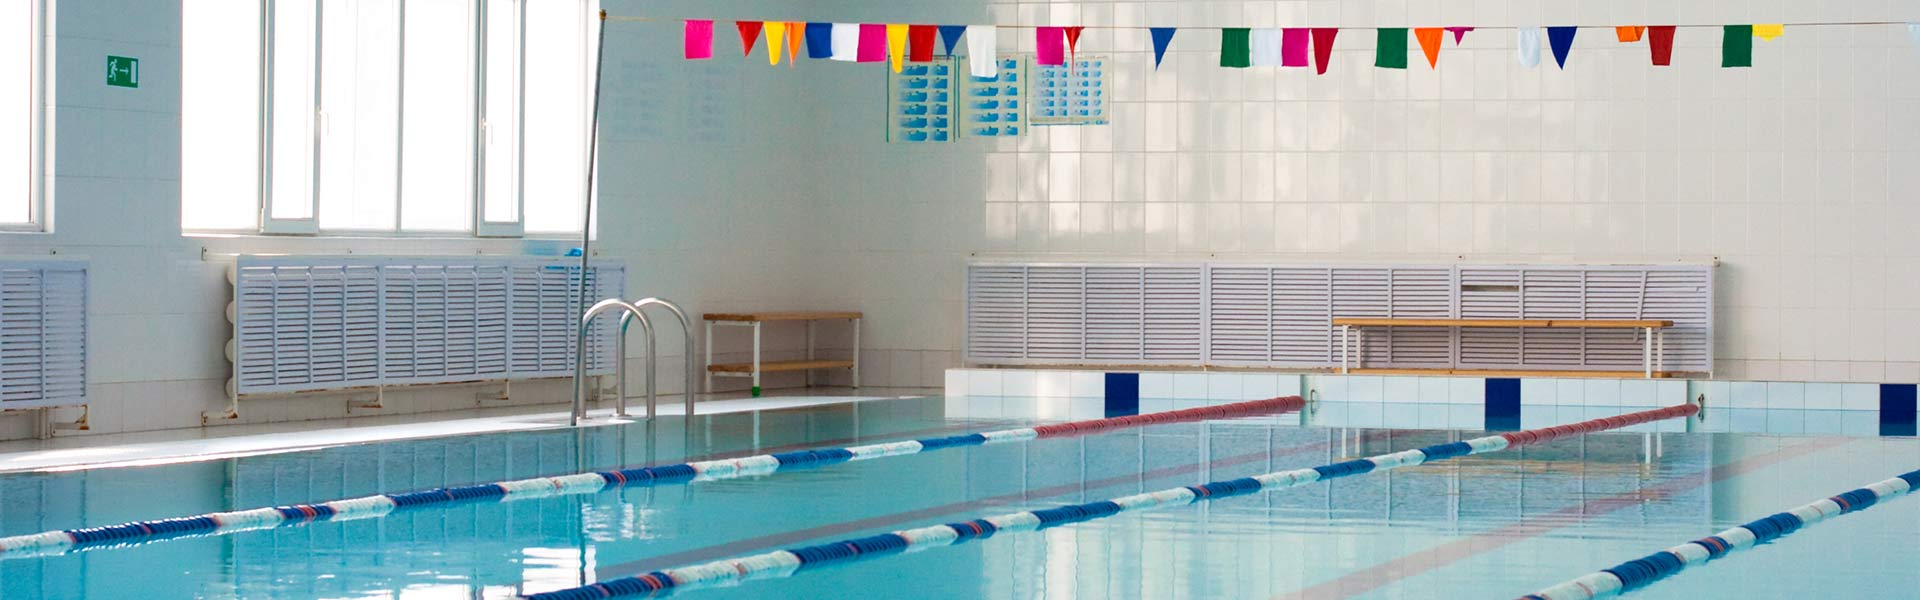 Swimming pool maintenance for schools in london and kent for Swimming pool cleaning service prices